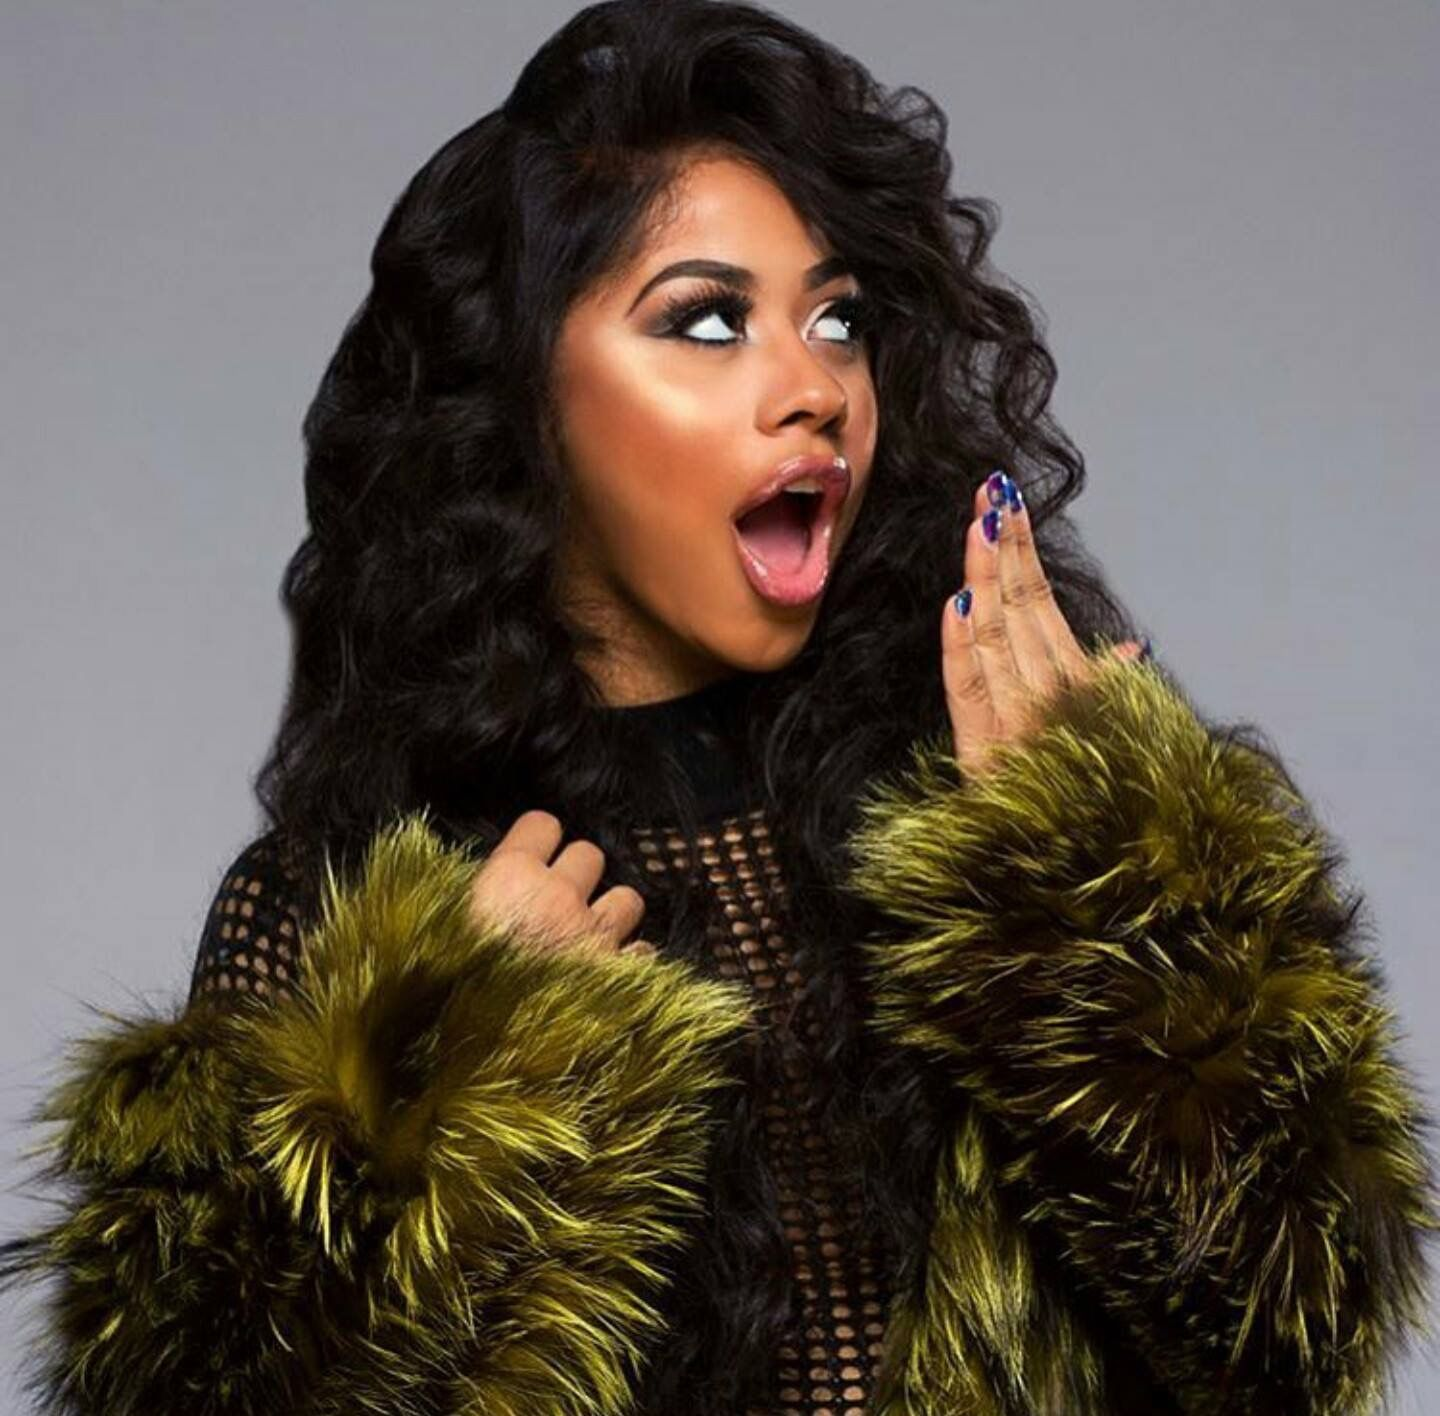 hennessy carolina! cardi b sister if y'all don't know! pose